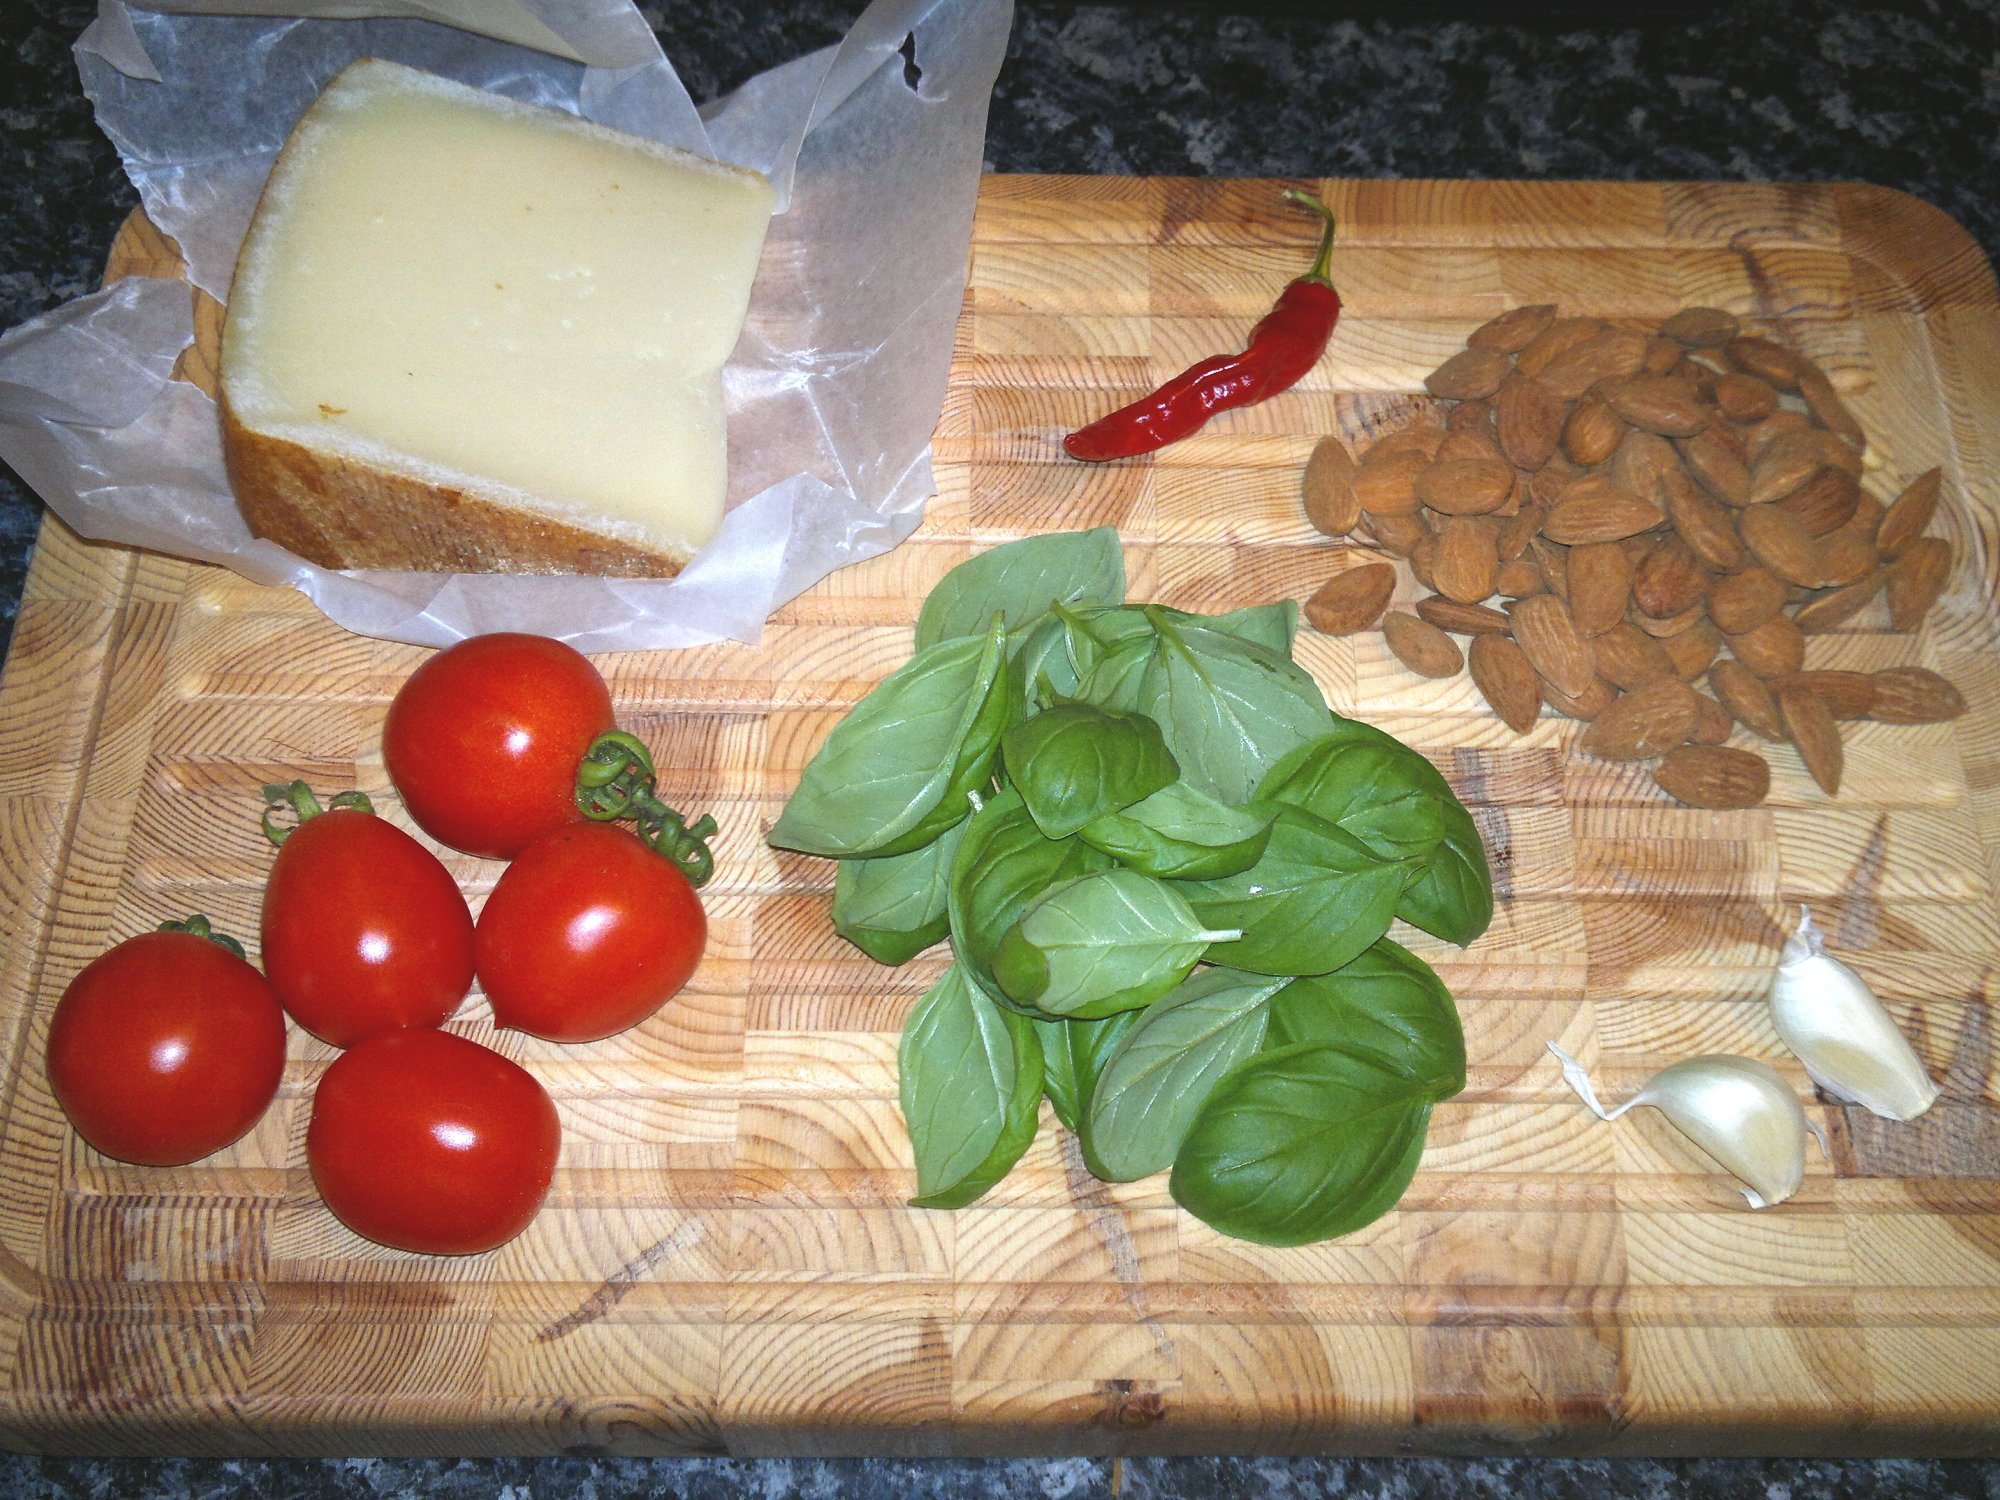 Ingredients for the Sicilian Pesto Trapanese